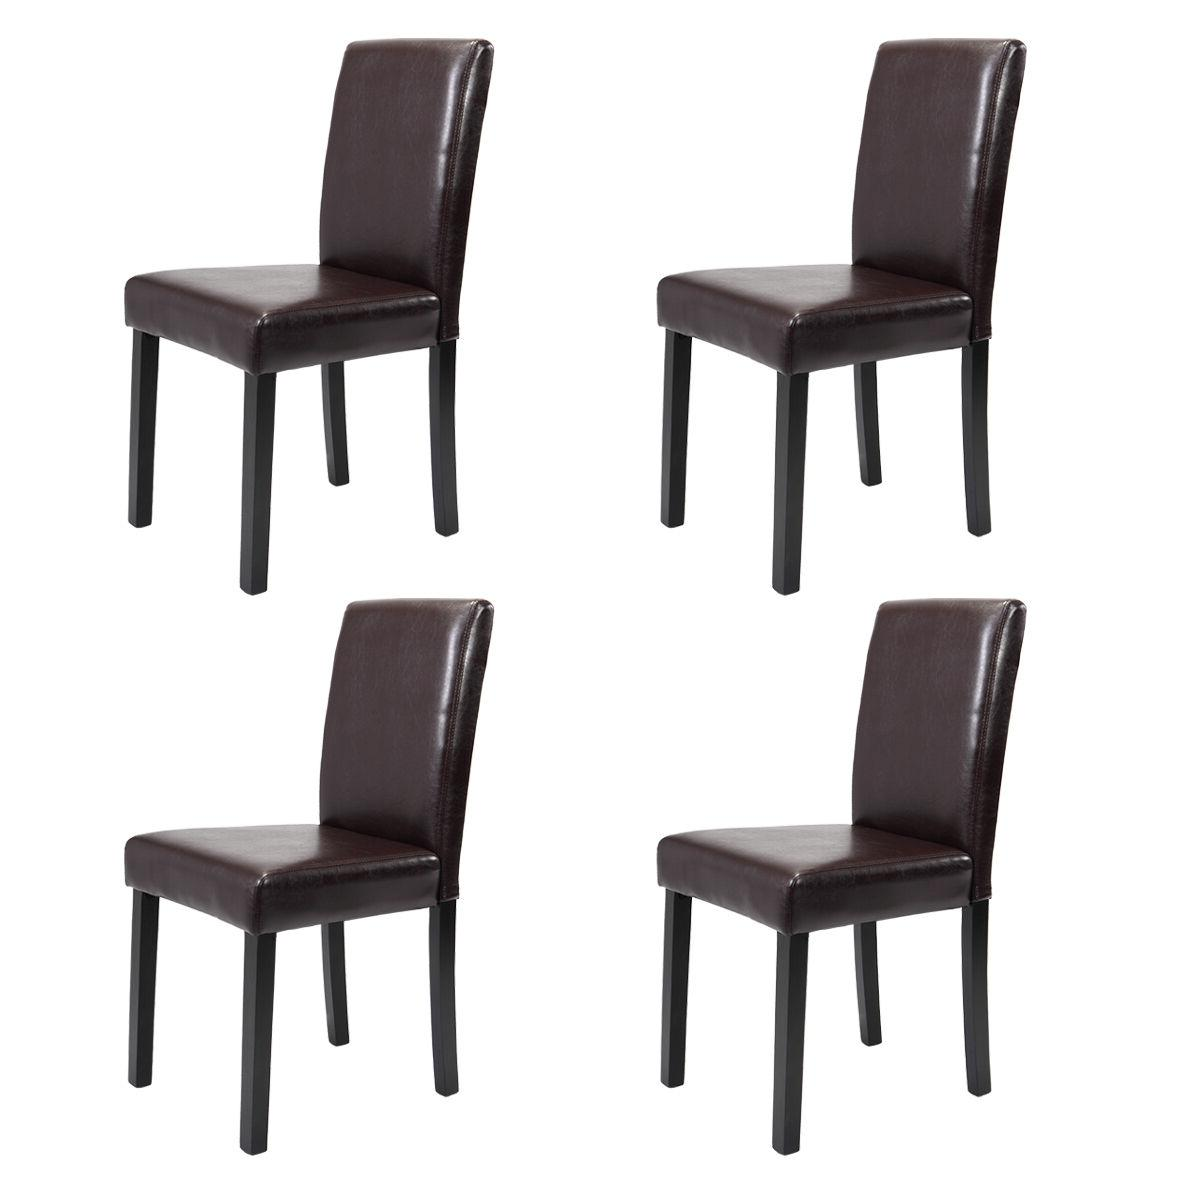 Set of 2/4/6/8/10 pcs Leather Elegant Design Dining Chairs H